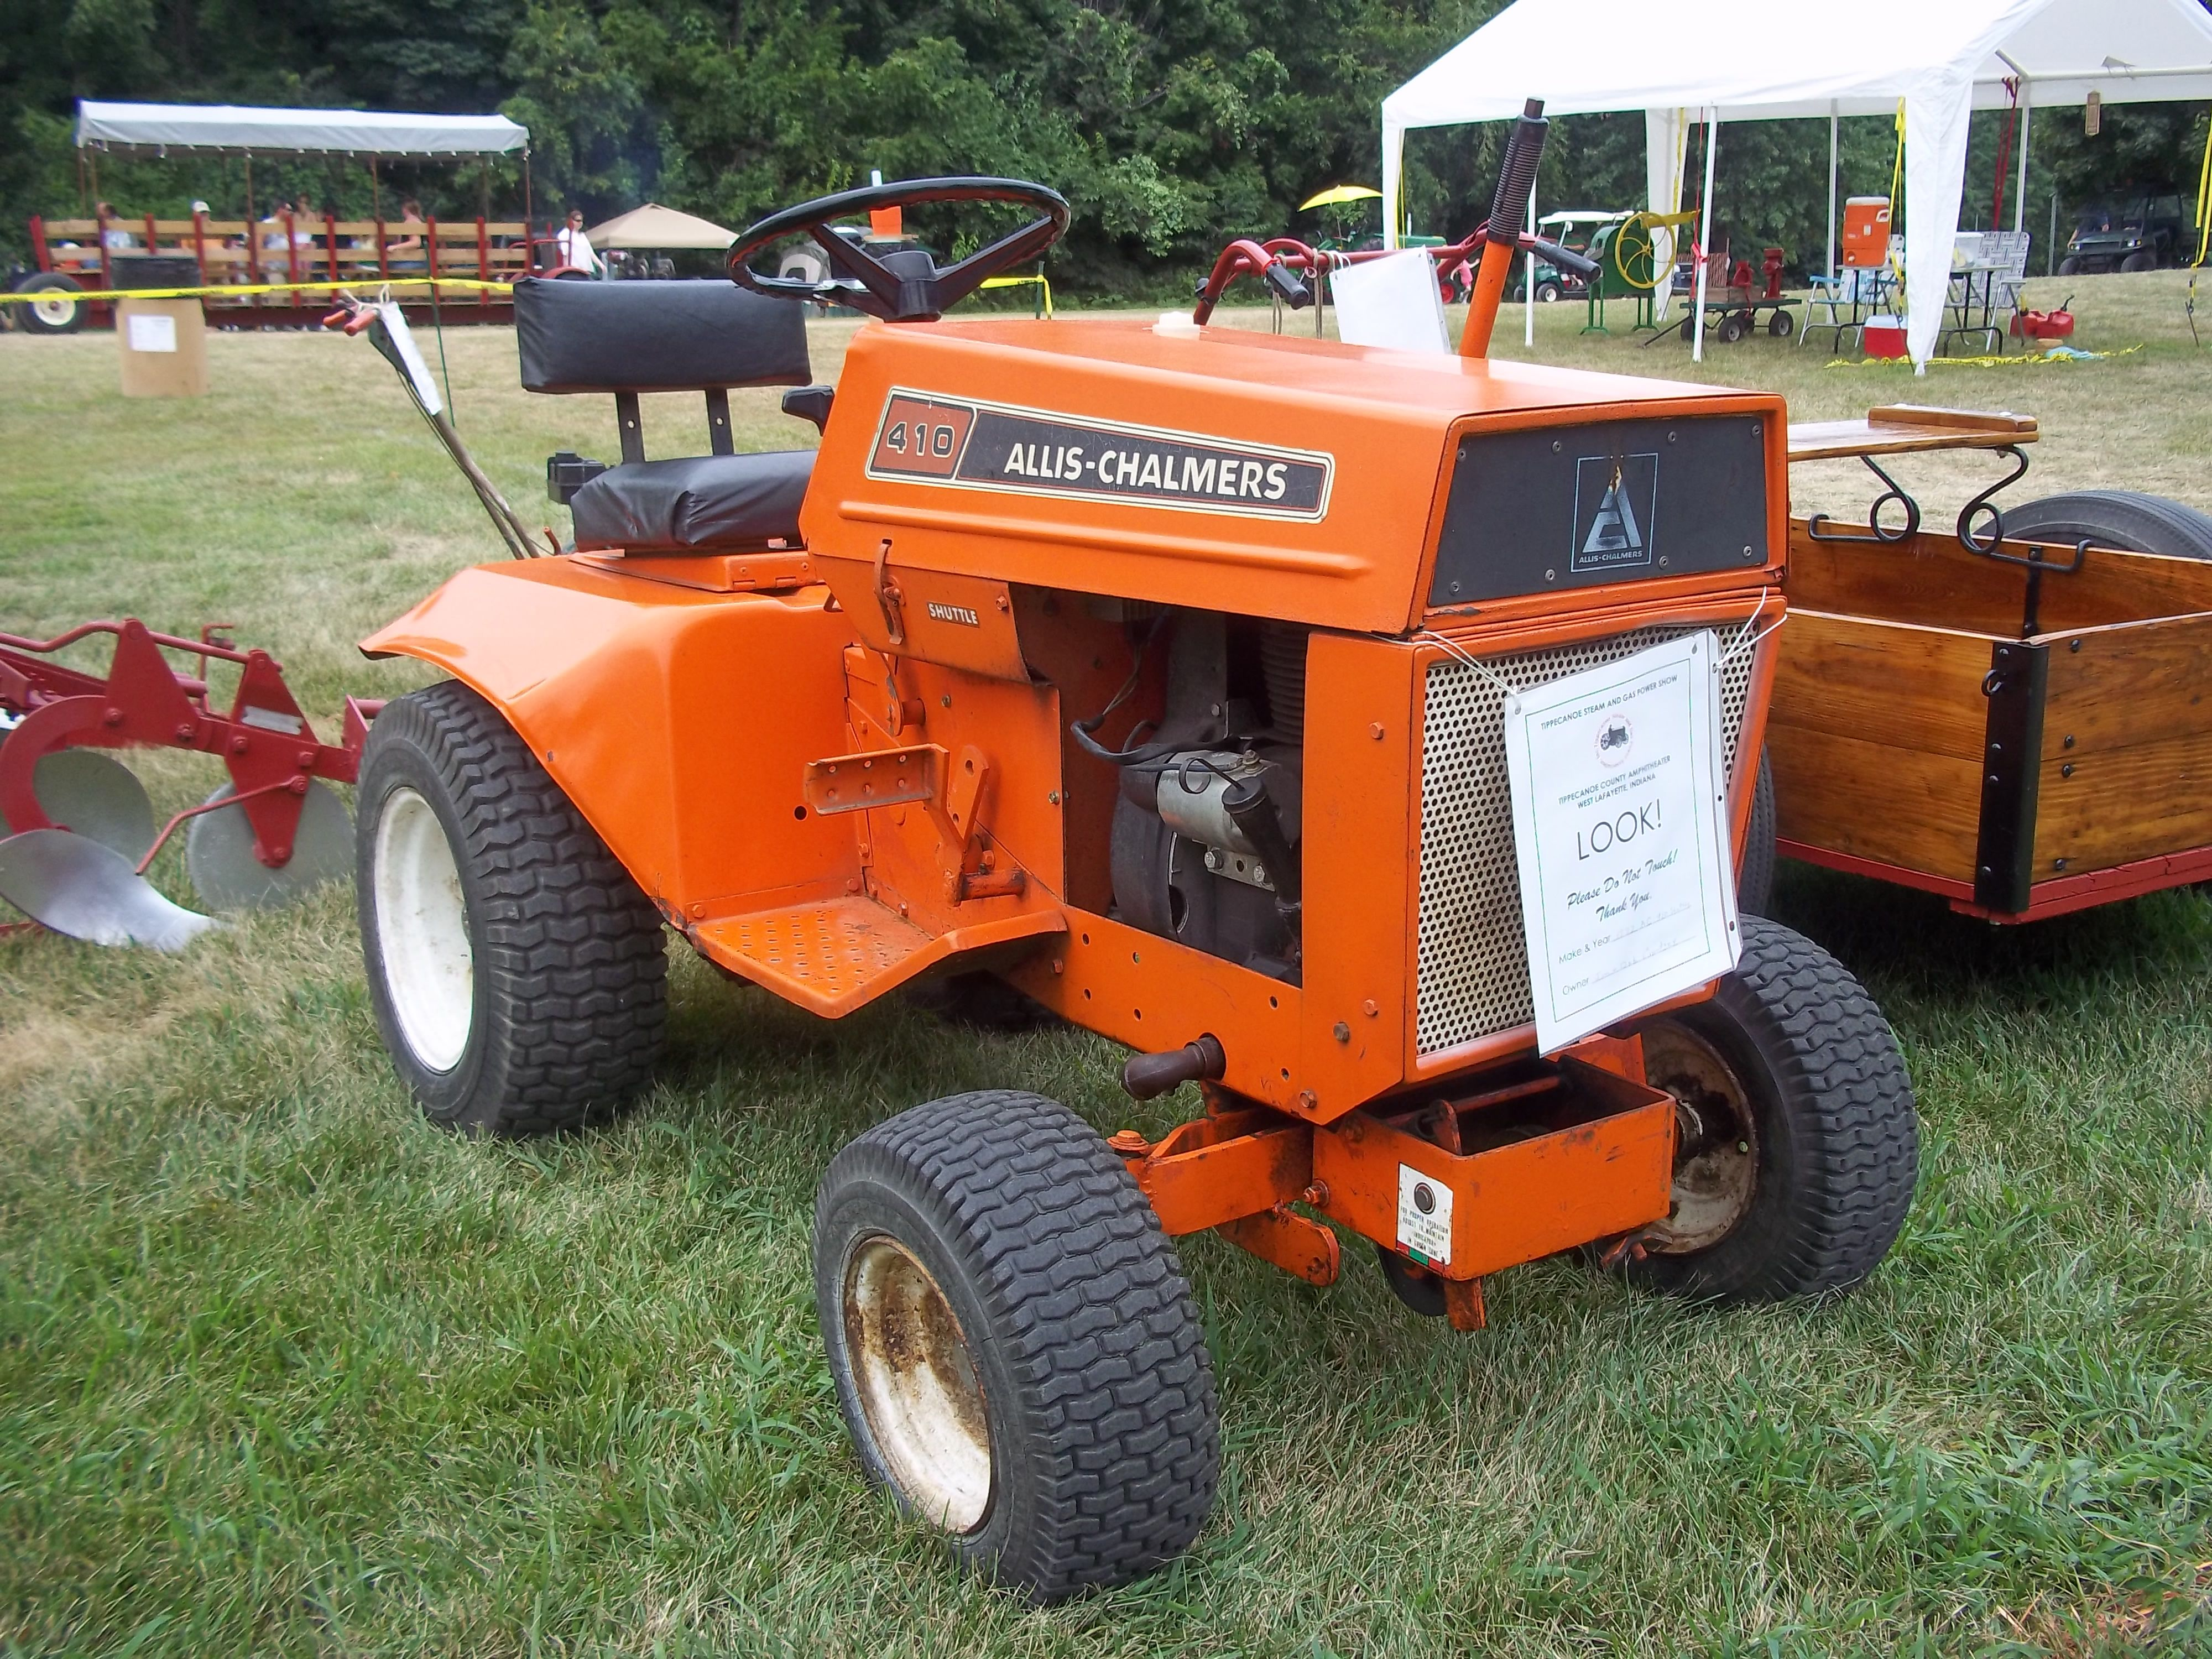 1940 9n ford tractor wiring diagram kenwood harness colors late 1970s allis chalmers lawn